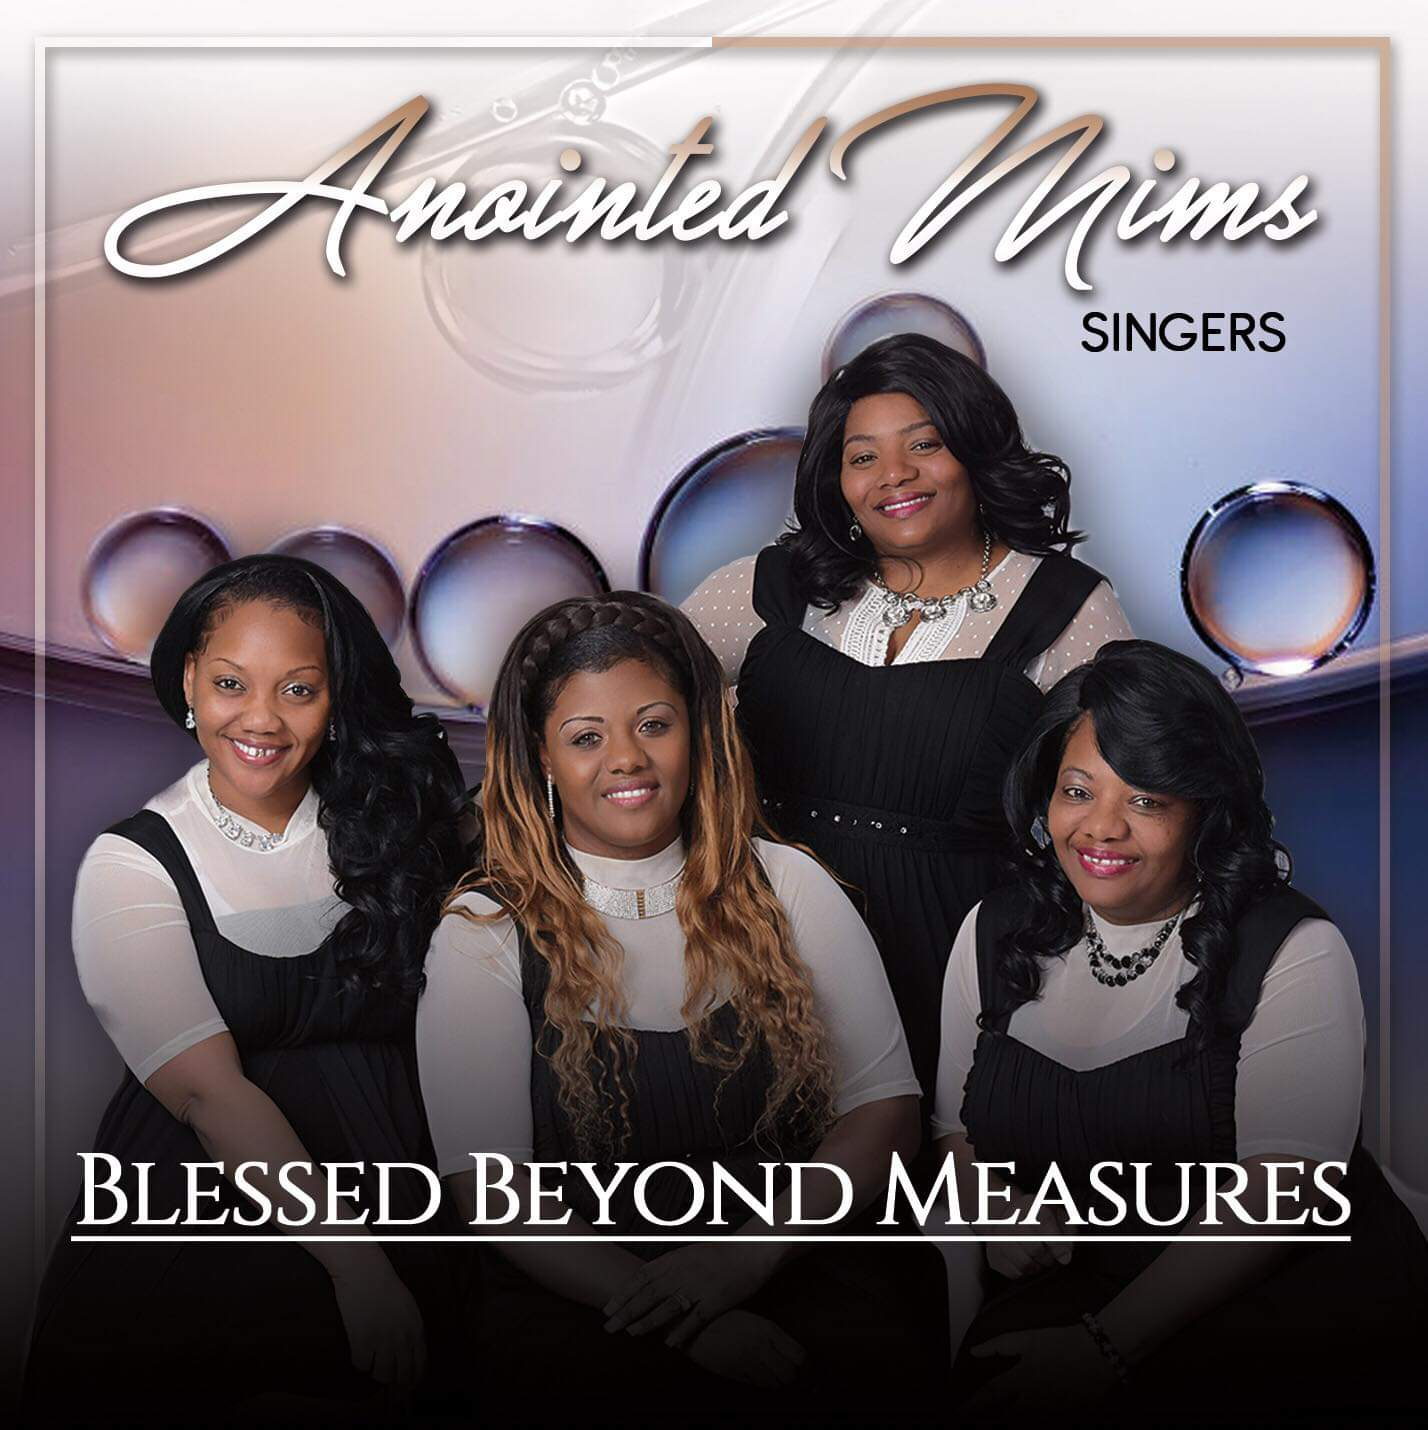 Art for This Joy by Anointed Mims Singers